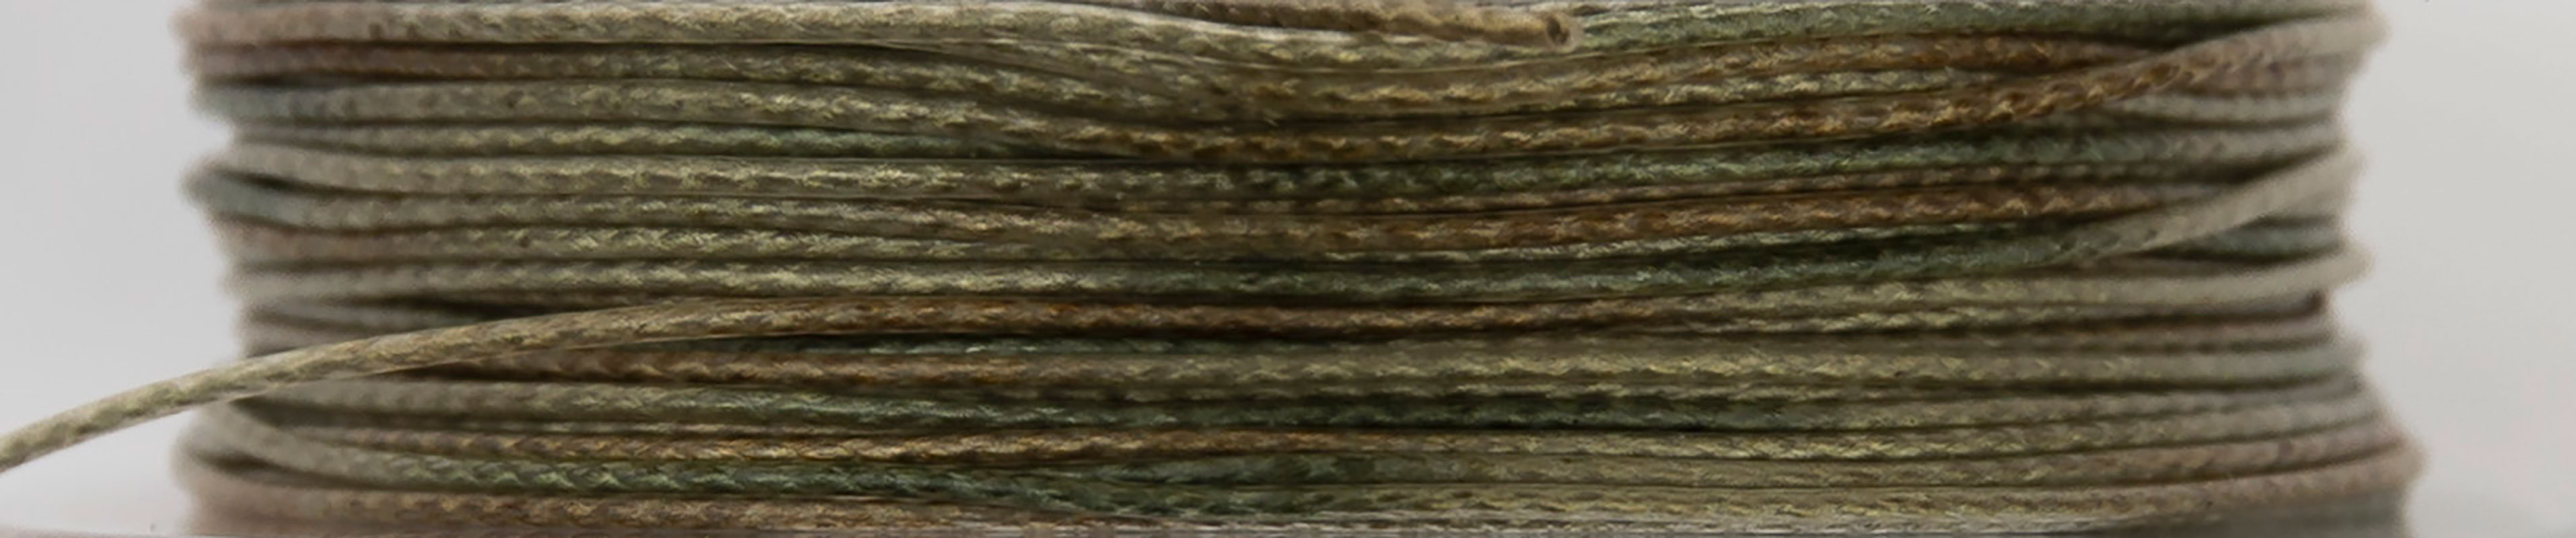 edges-camotex-soft-coated-camo-braid_camo_25lb_20m_cu01gif